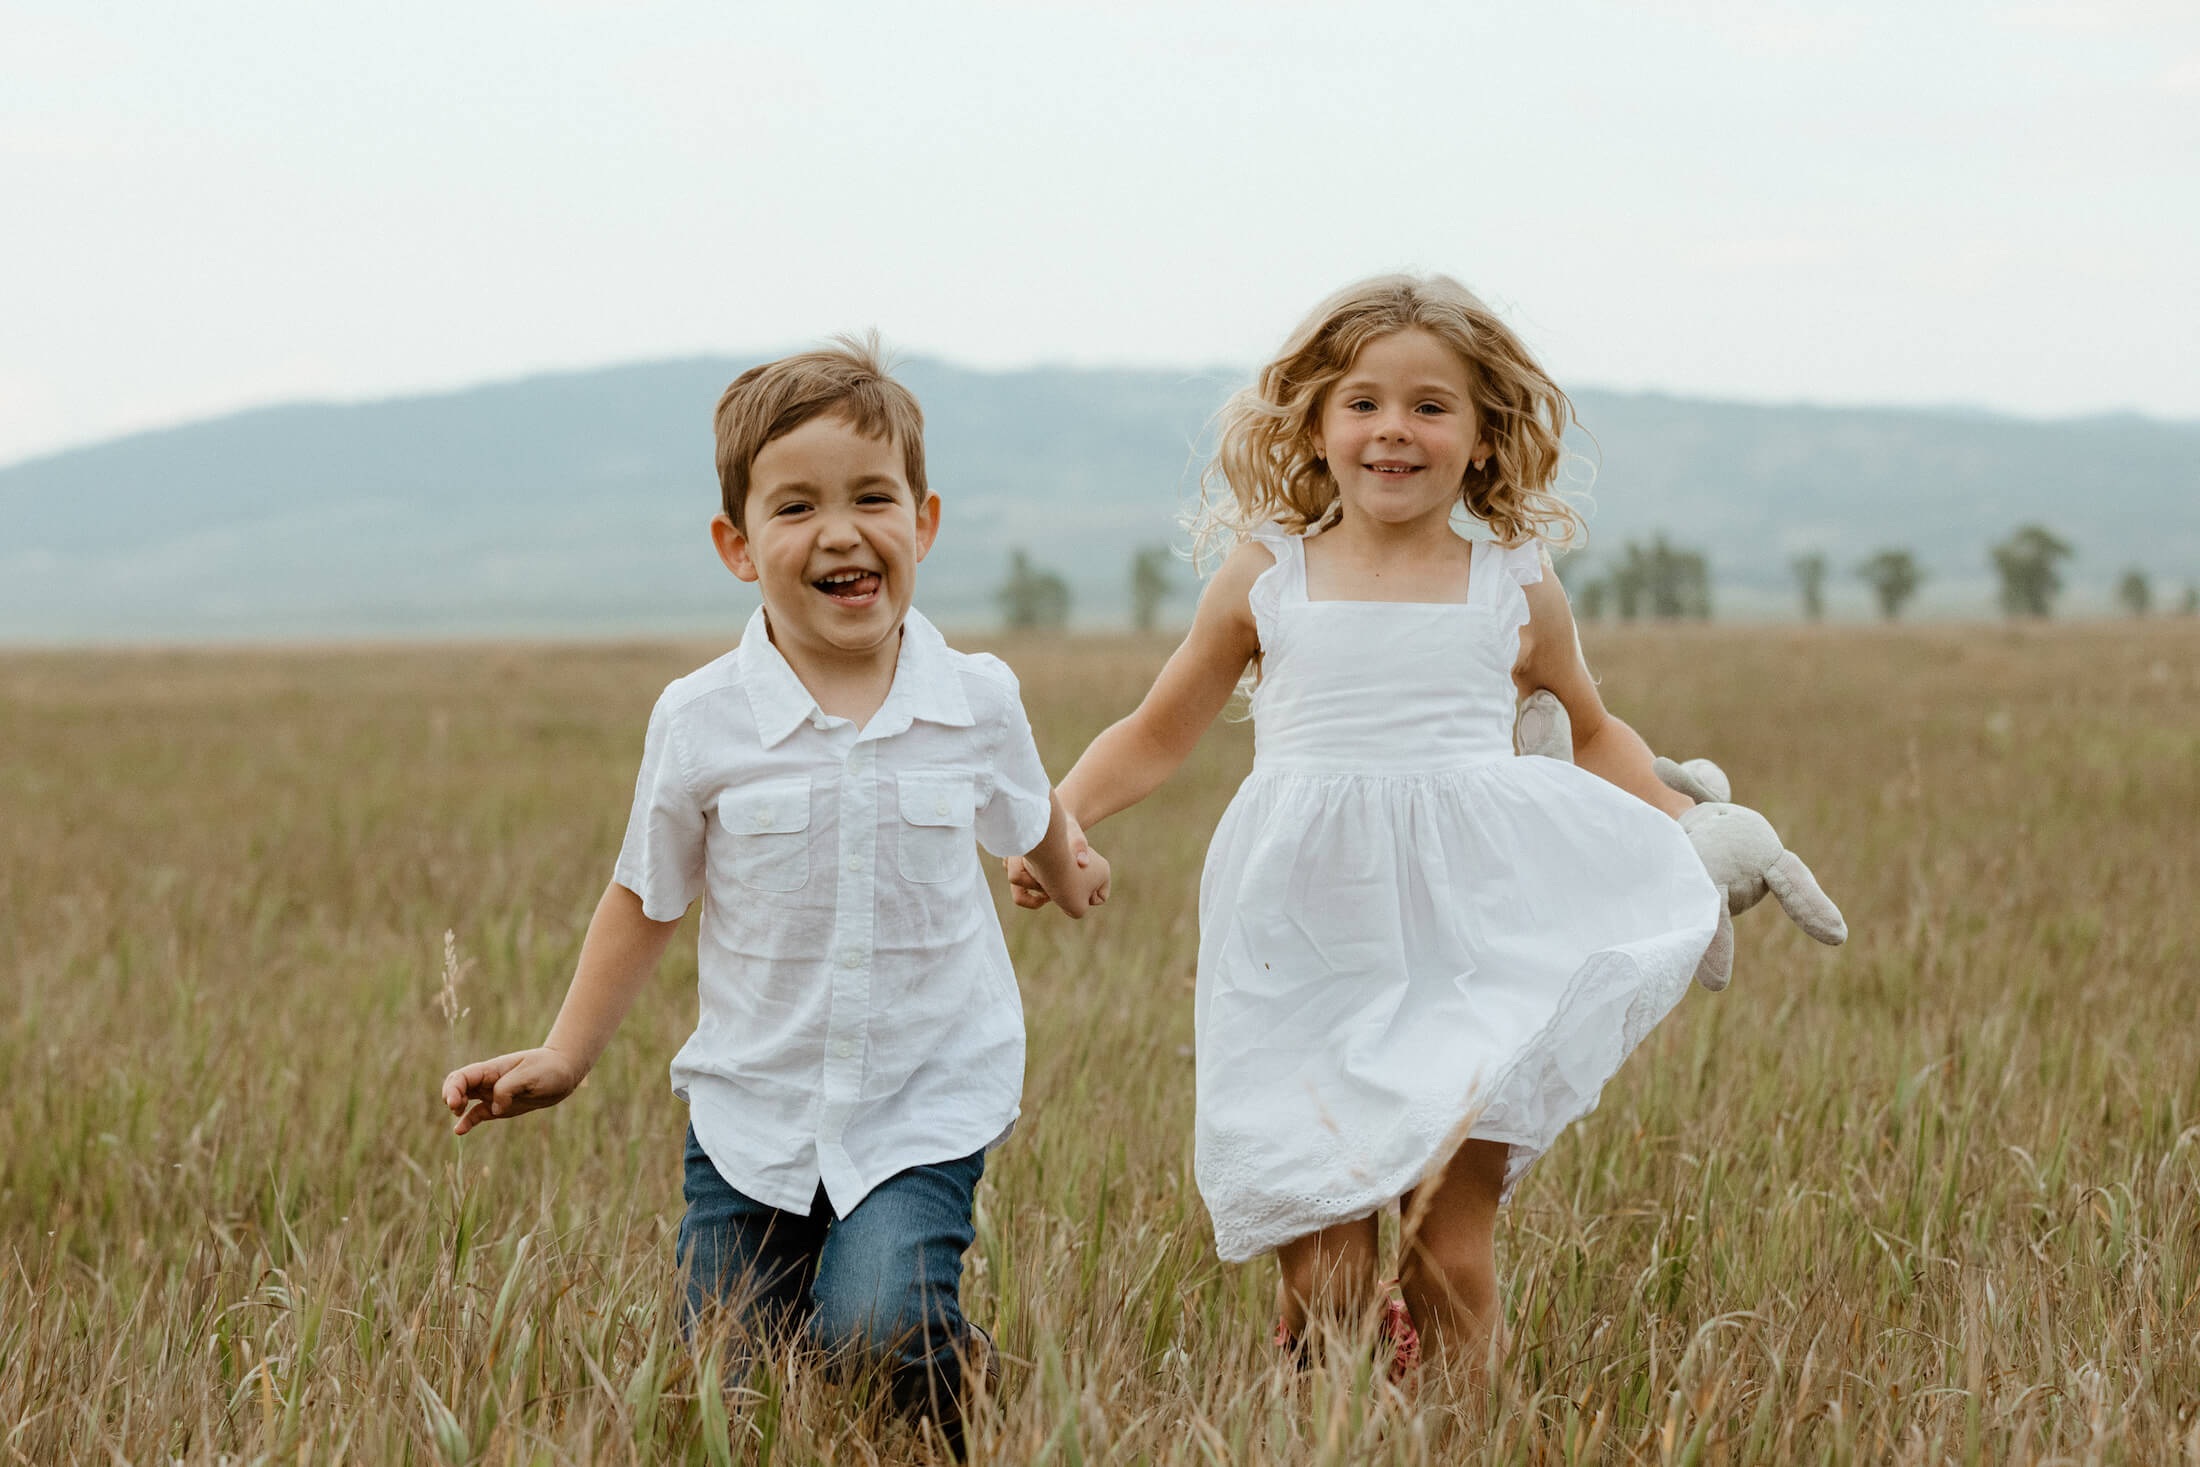 Kids running and holding hands in a field in Jackson Hole, Wyoming